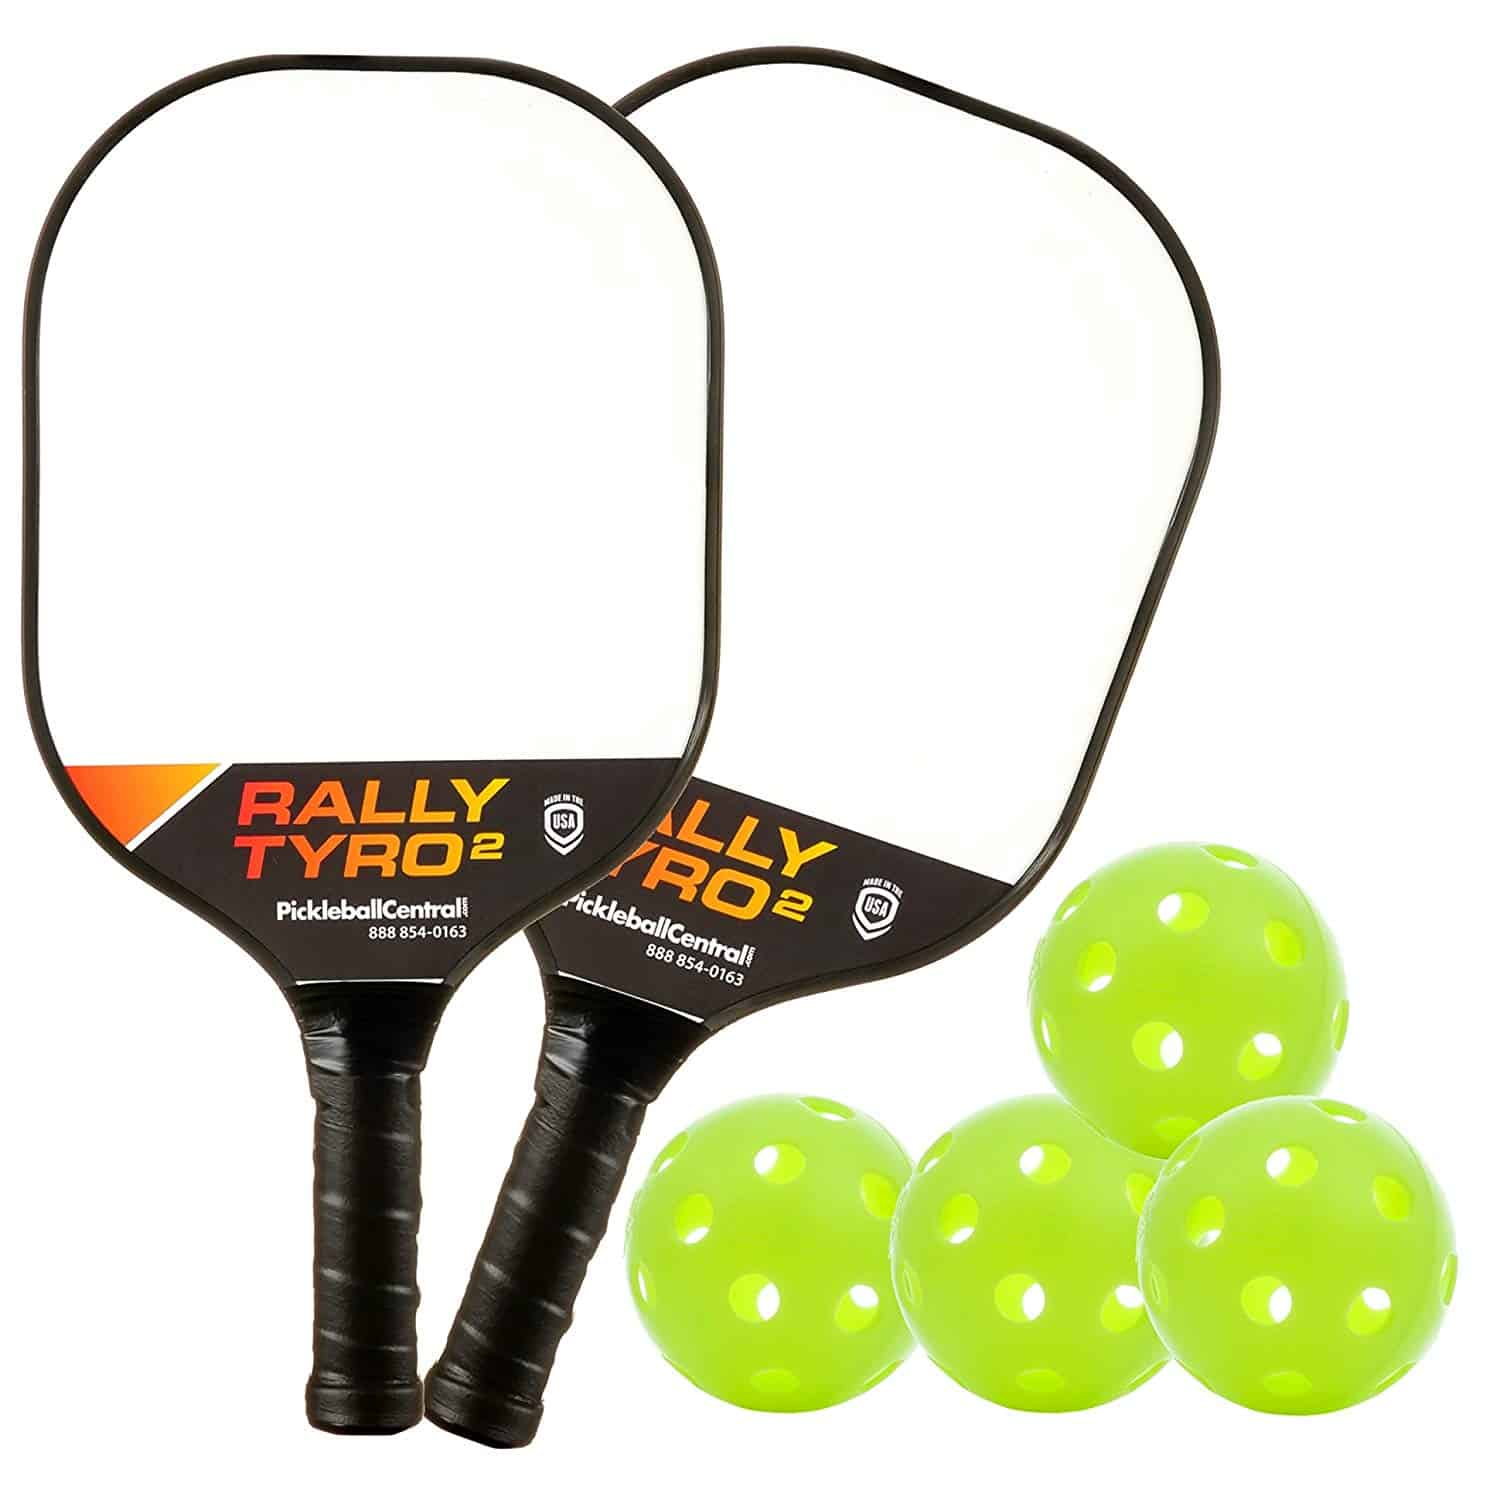 Rally Tyro 2 Pickleball Paddle Set